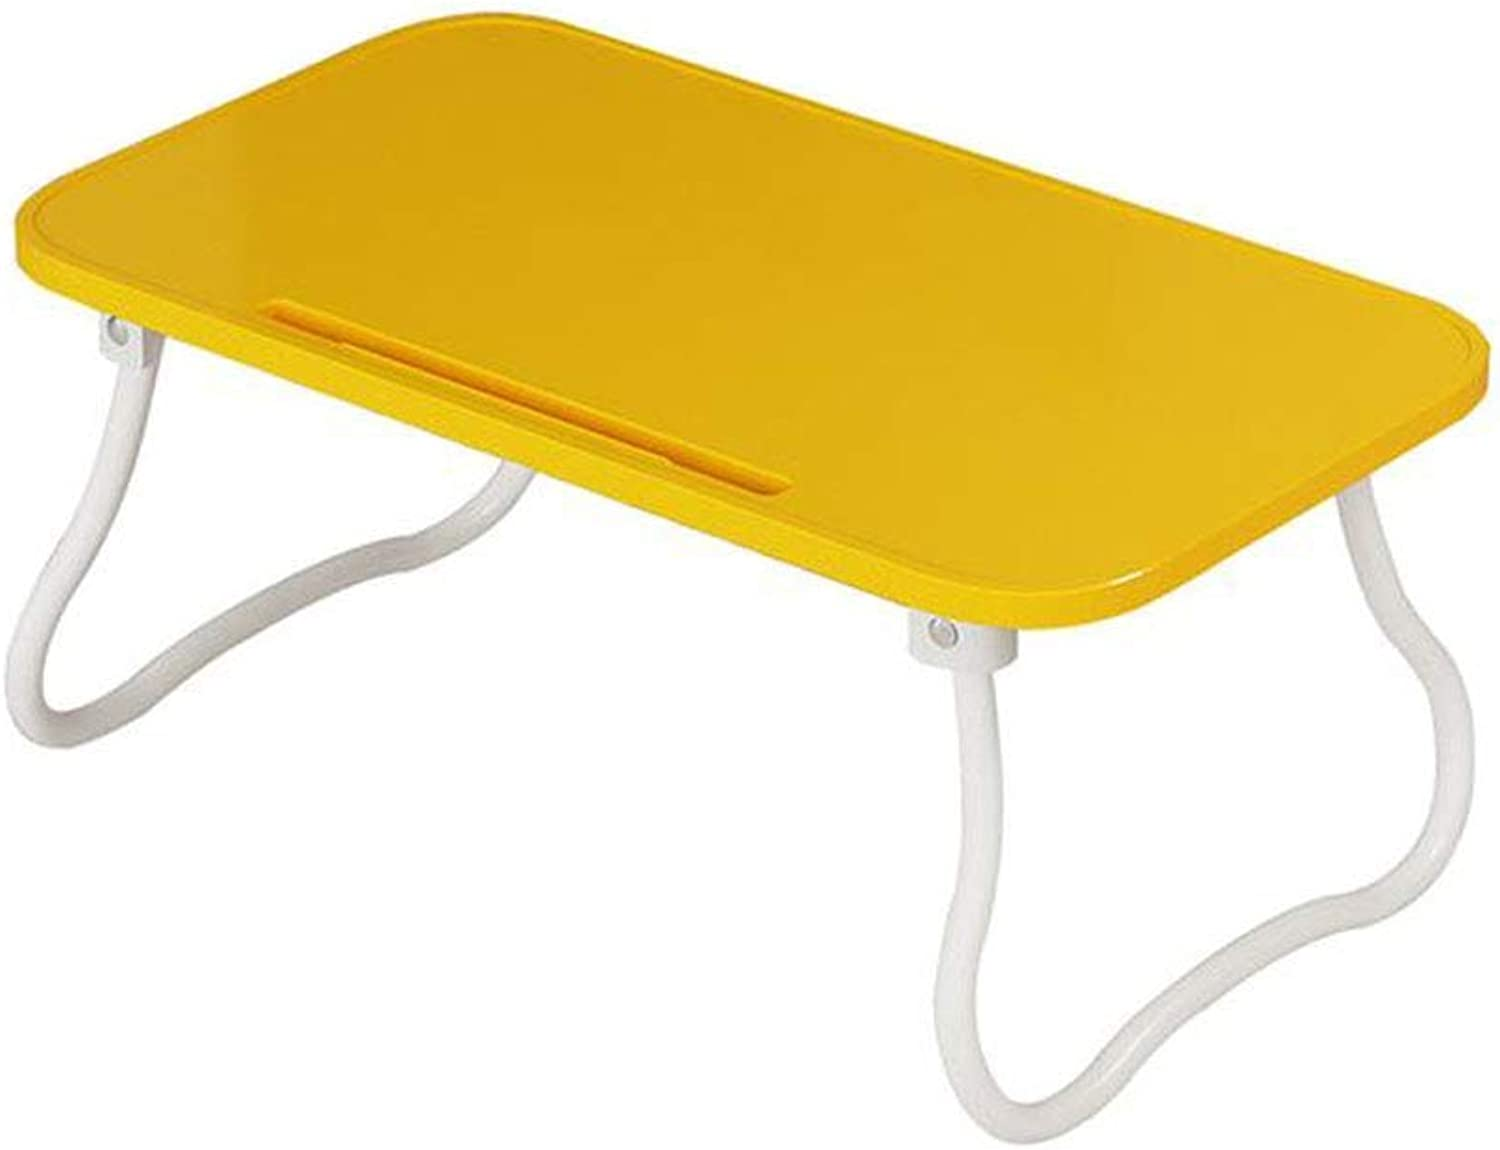 LiTing-Folding Table Plastic Bed Folding Computer Table Simple Modern Dormitory Lazy Table Multi-Functional Learning Small Desk (Size  54x31x23cm)